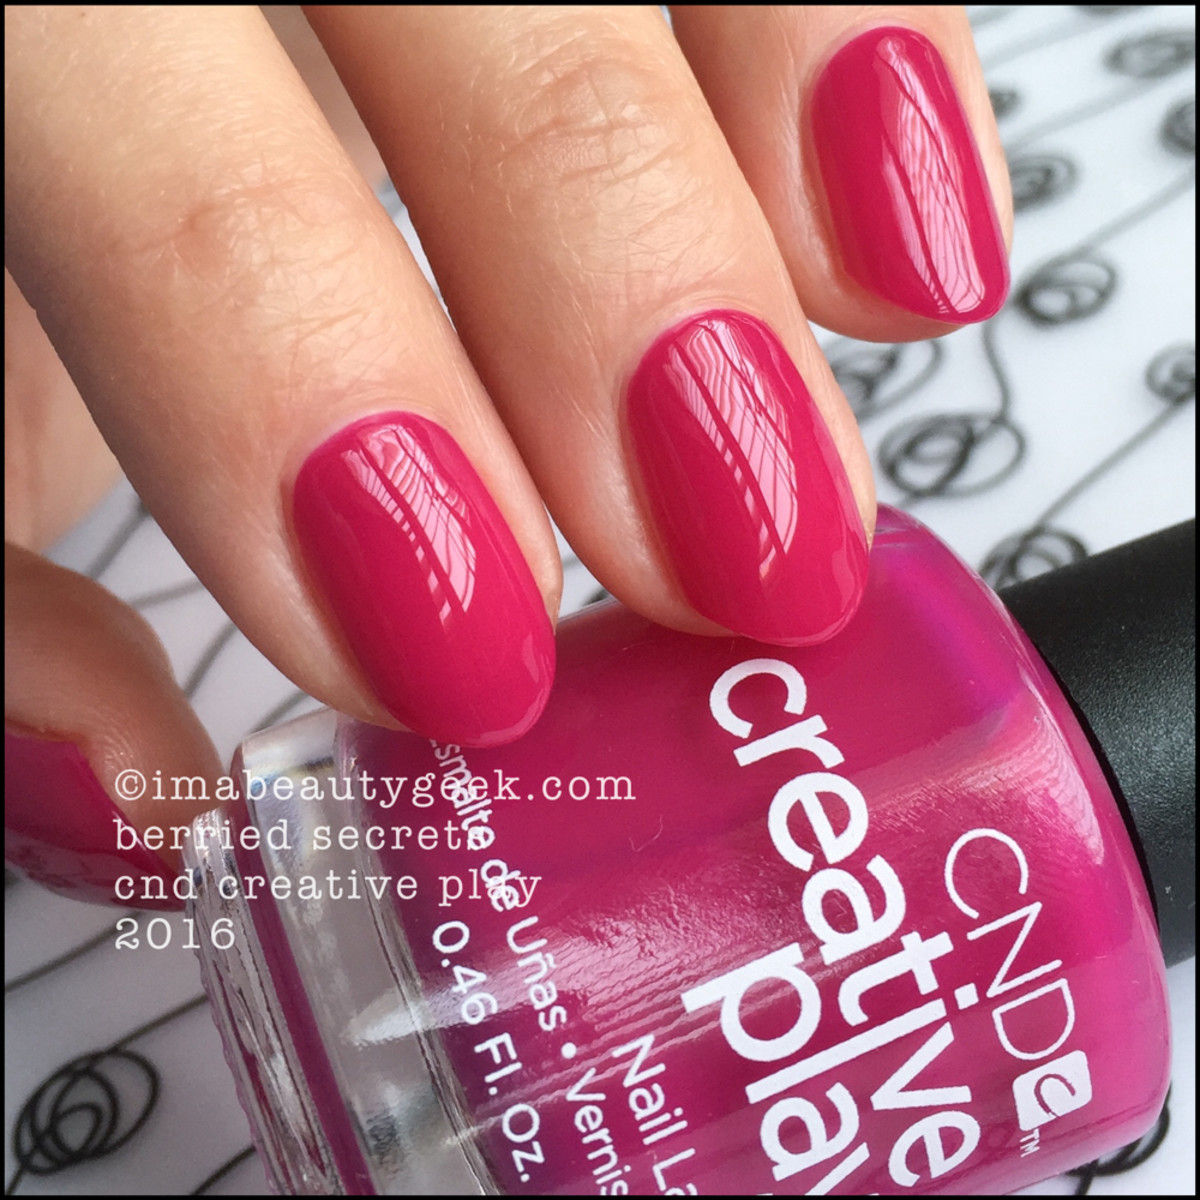 CND Creative Play Berried Secrets_CND Creative Play Nail Polish Swatches